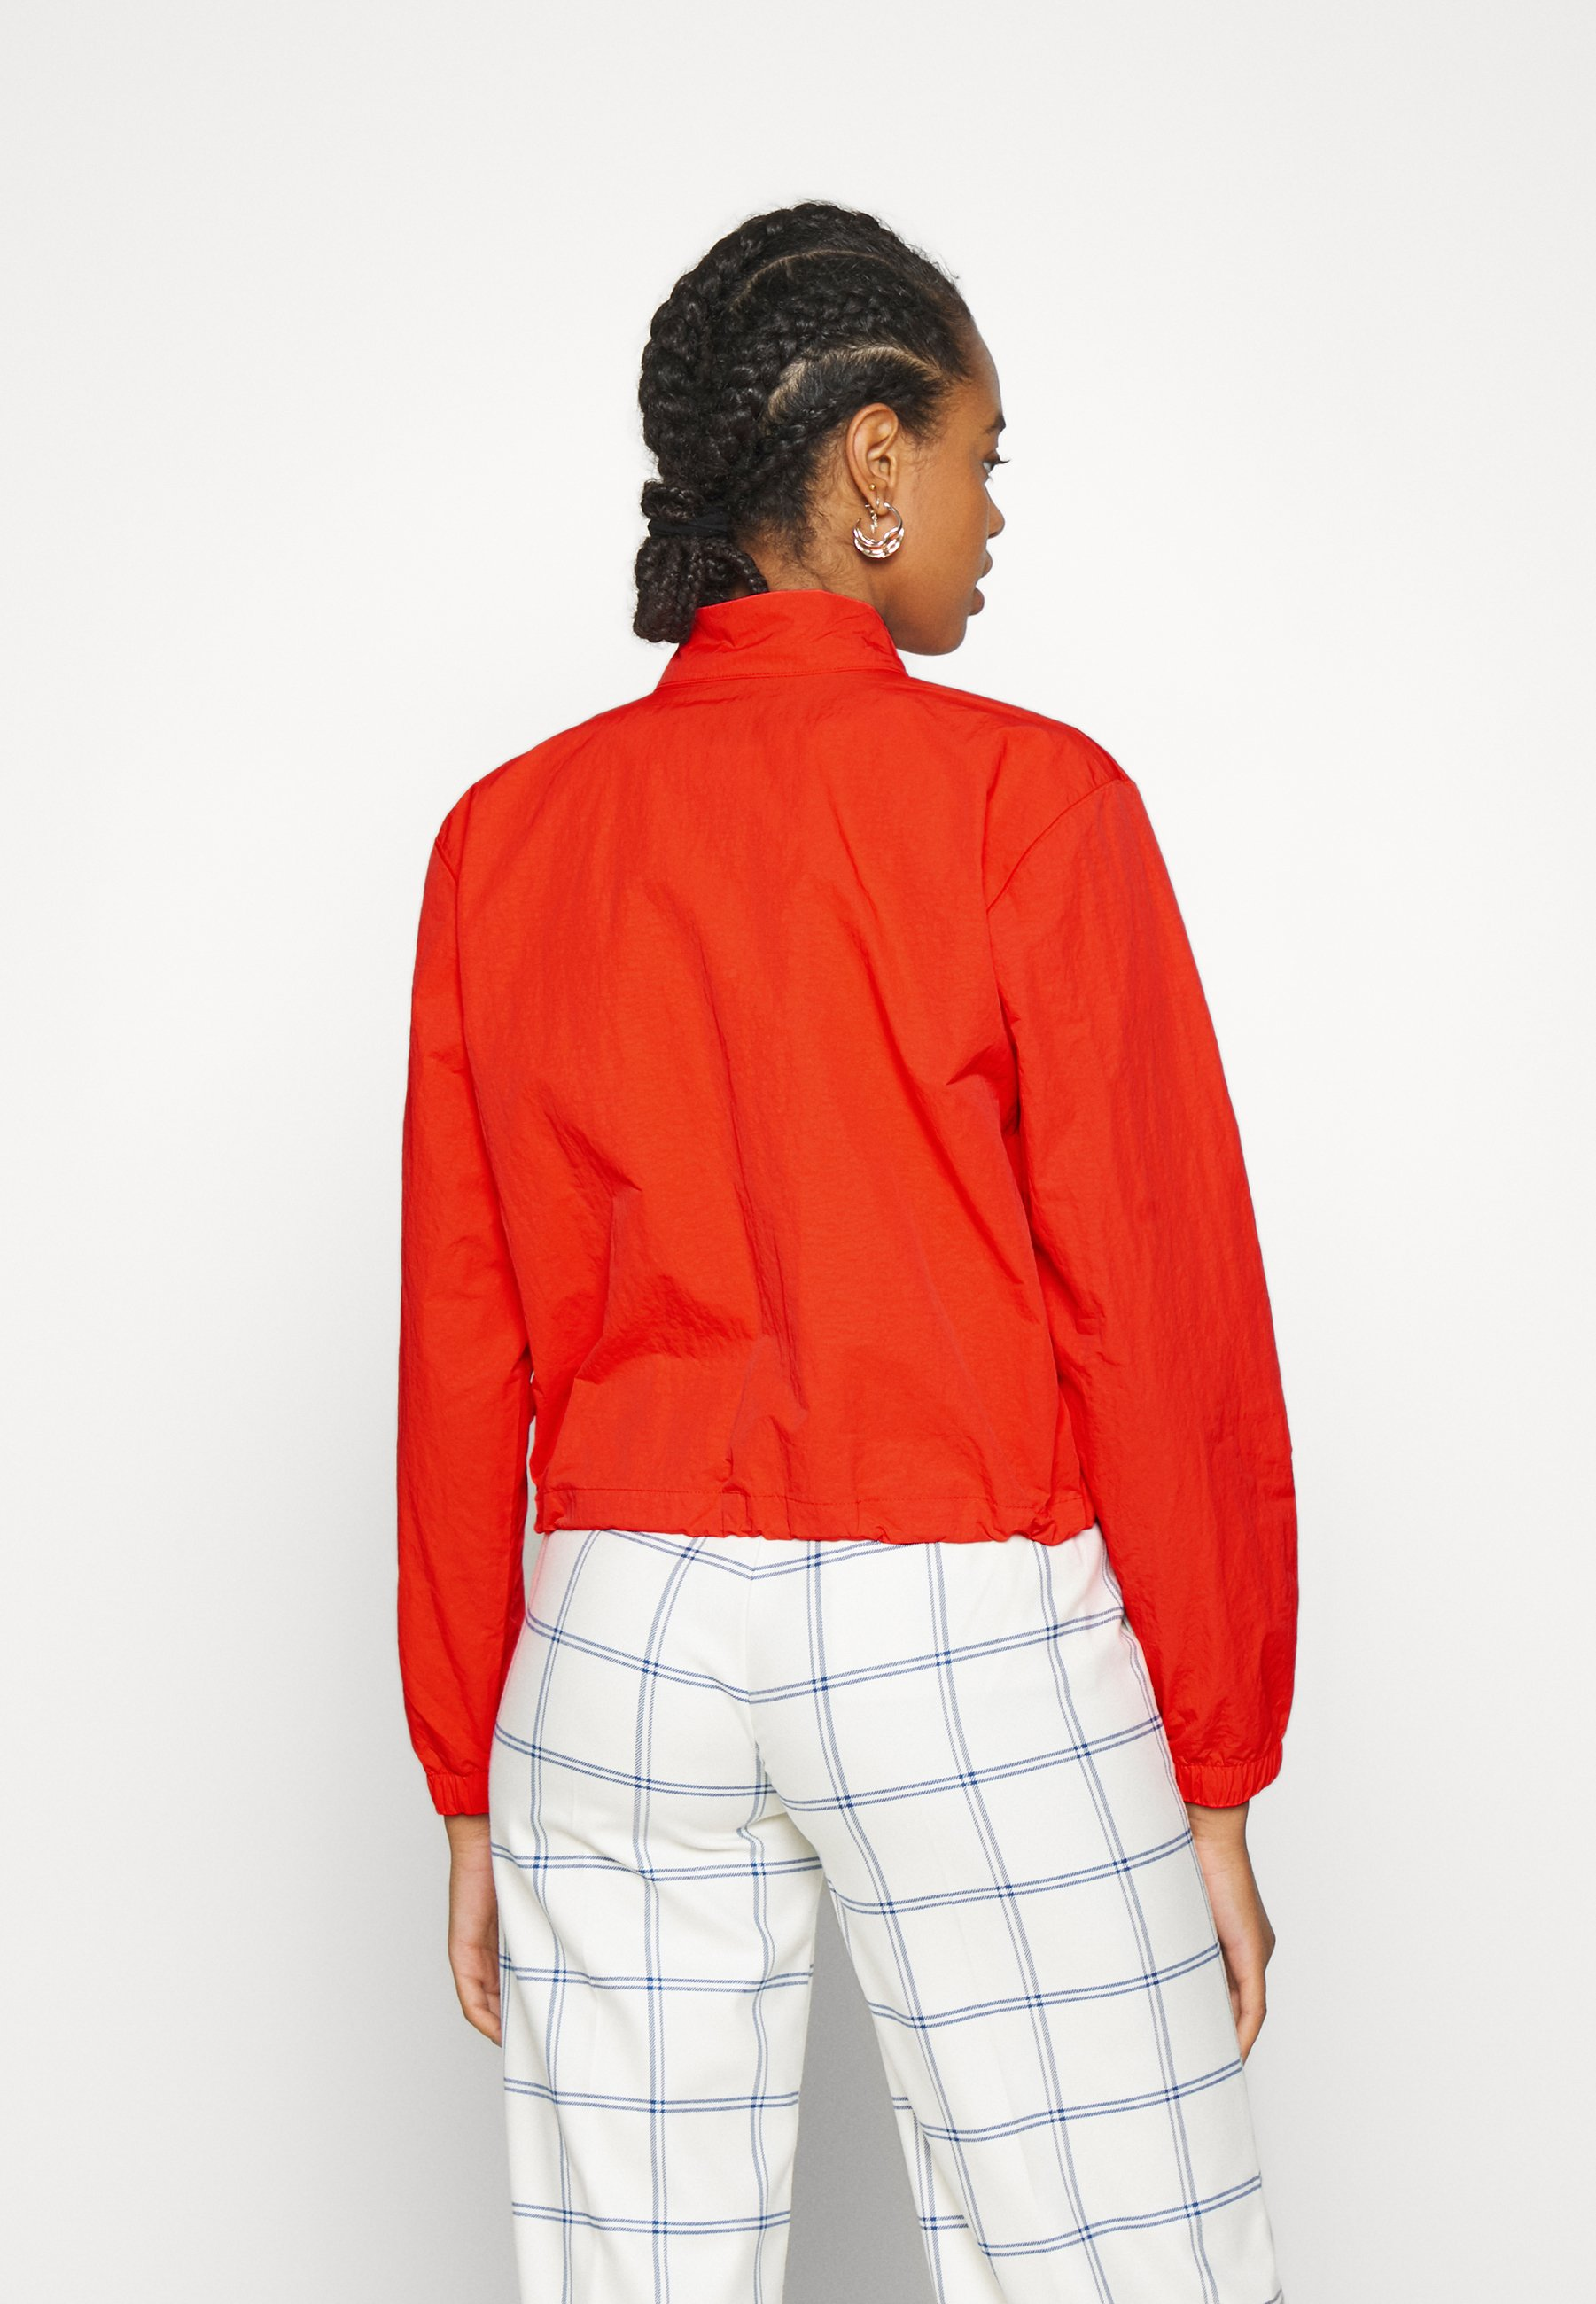 Nike Sportswear Training jacket - chile red SfWOC